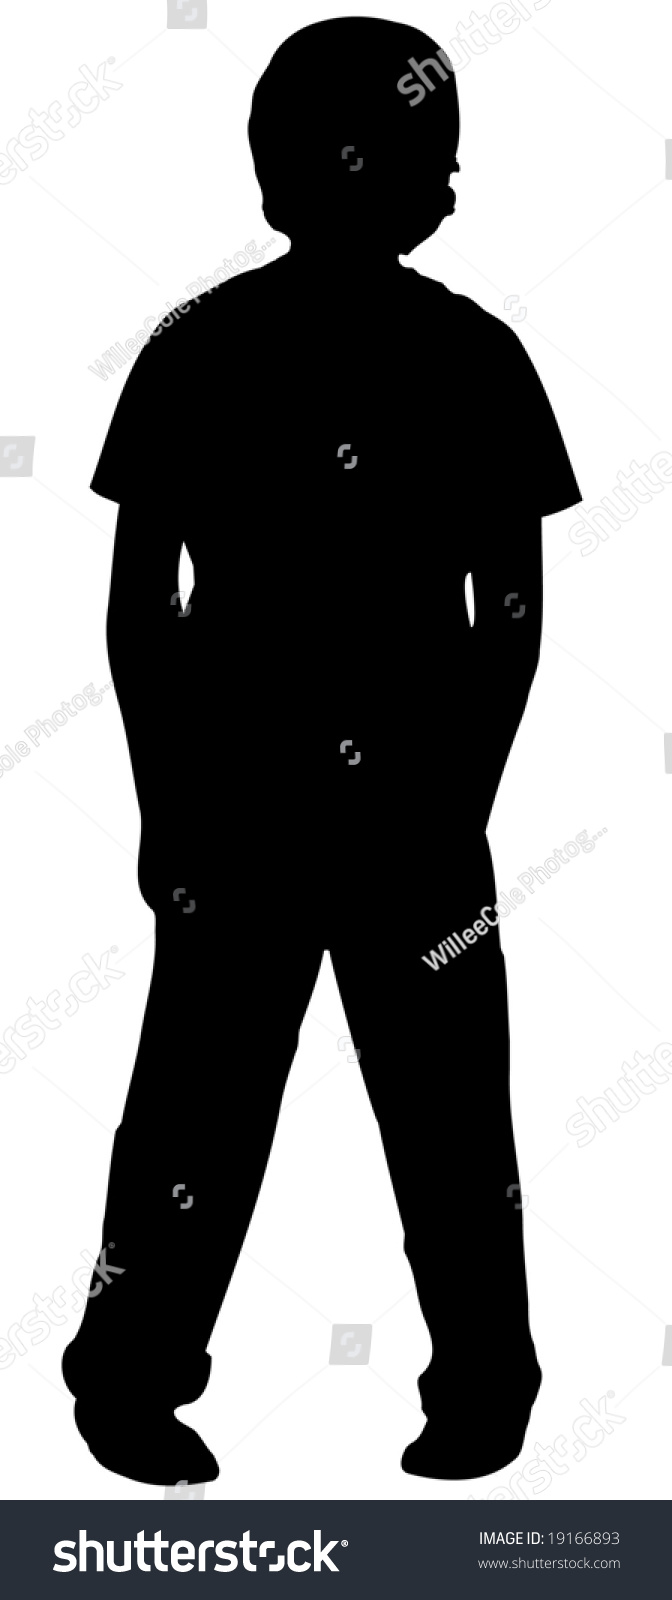 silhouette of a boy standing with his feet pigeon toed